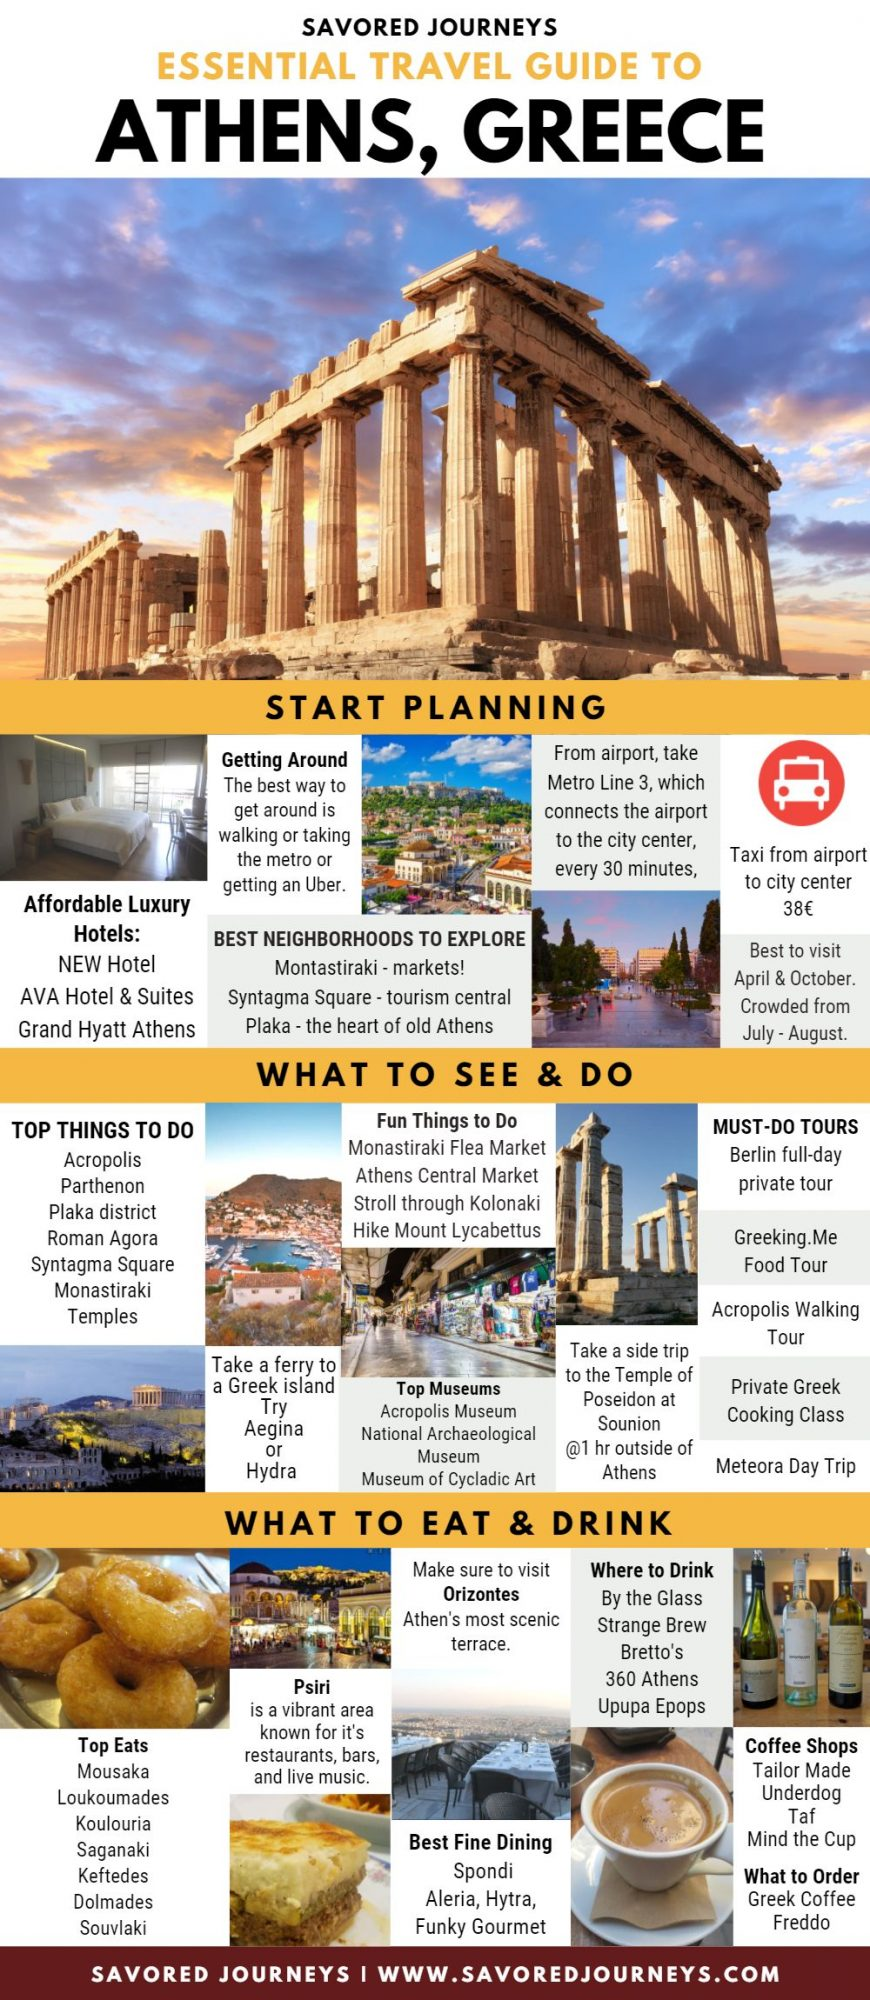 Essential Travel Guide to Athens